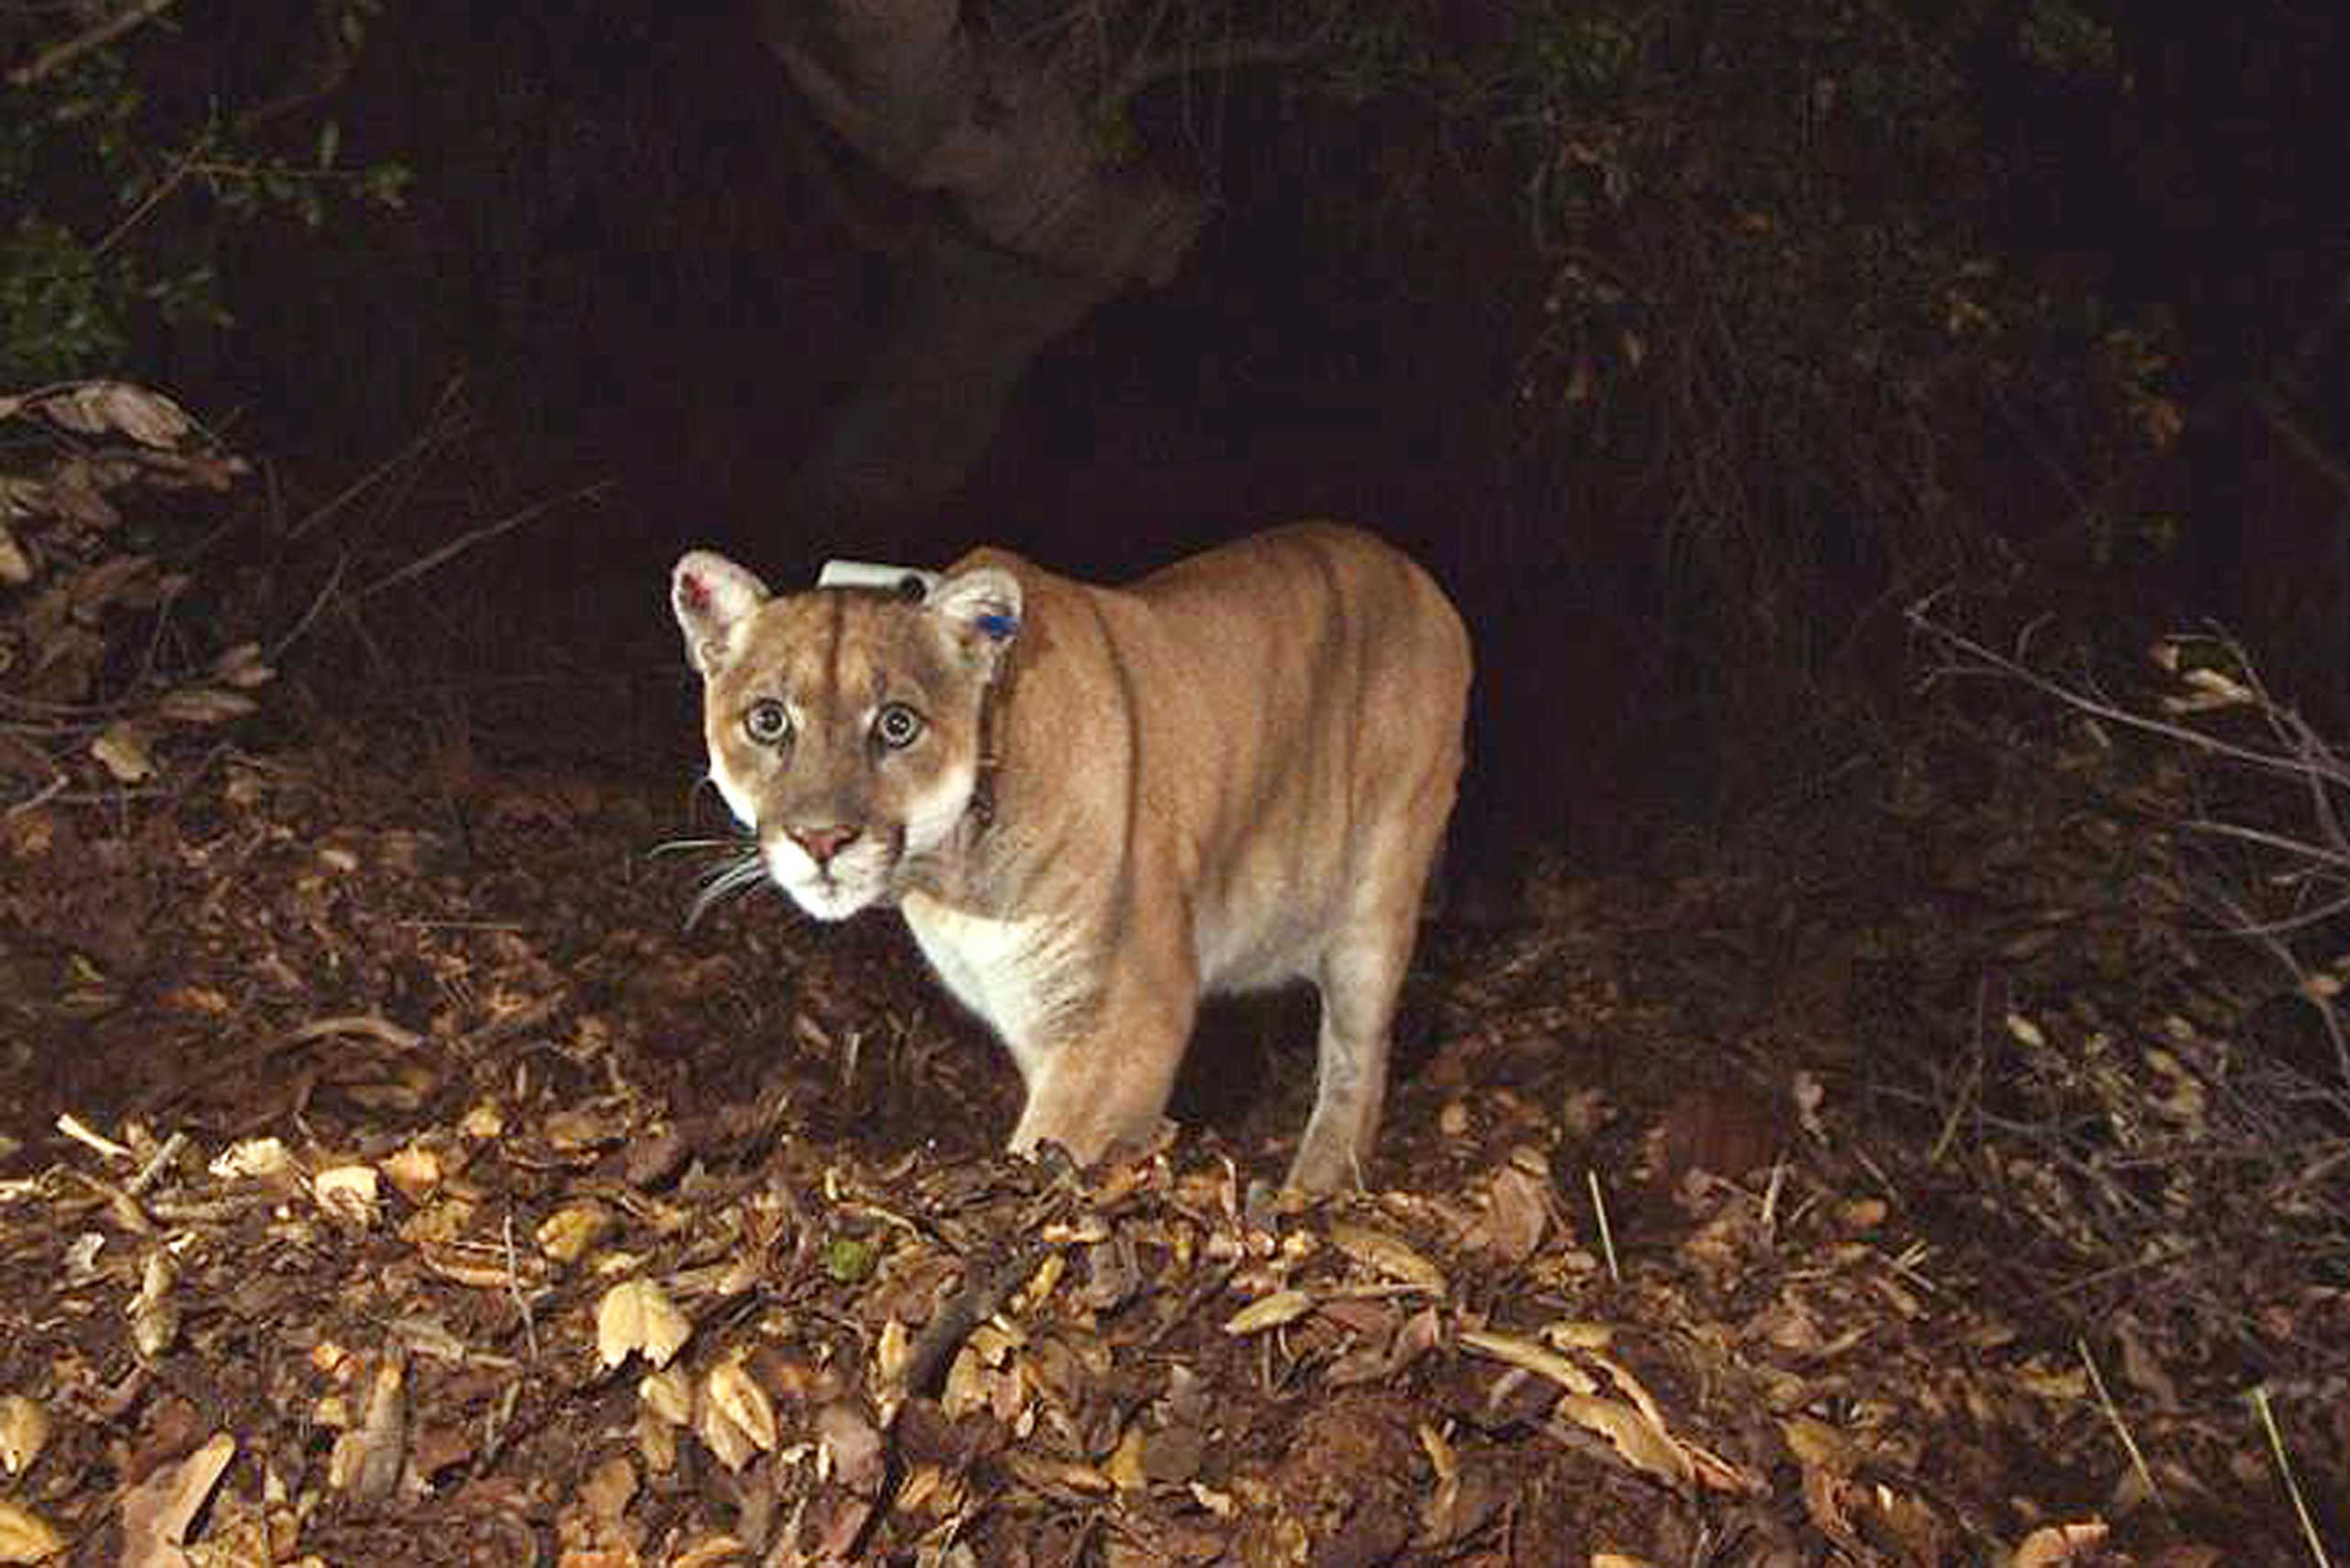 This Nov. 2014 photo provided by the National Park Service shows the mountain lion known as P-22, the mountain lion living in Los Angeles' Griffith Park.